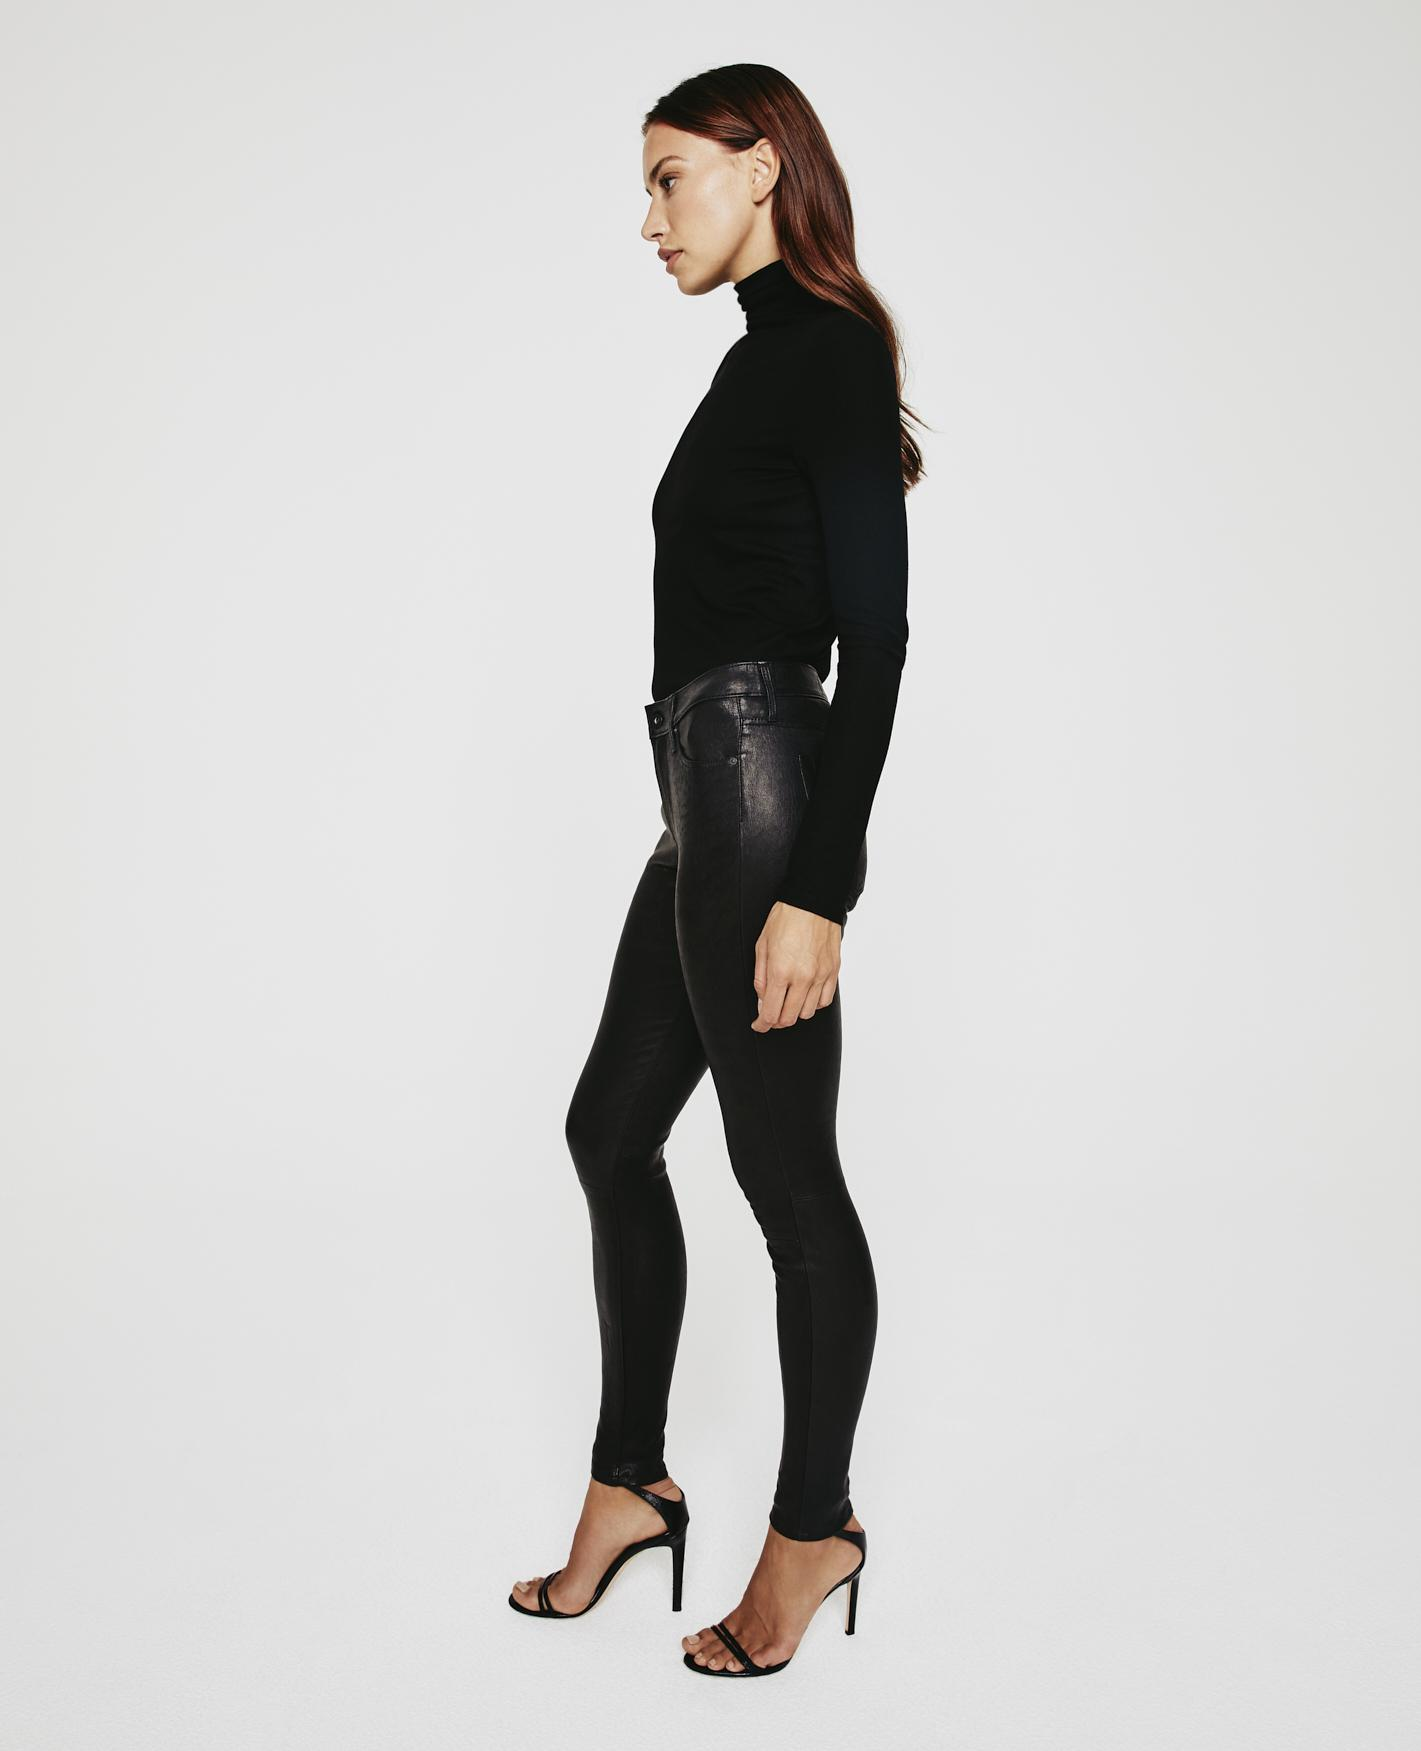 The Leather Farrah Skinny